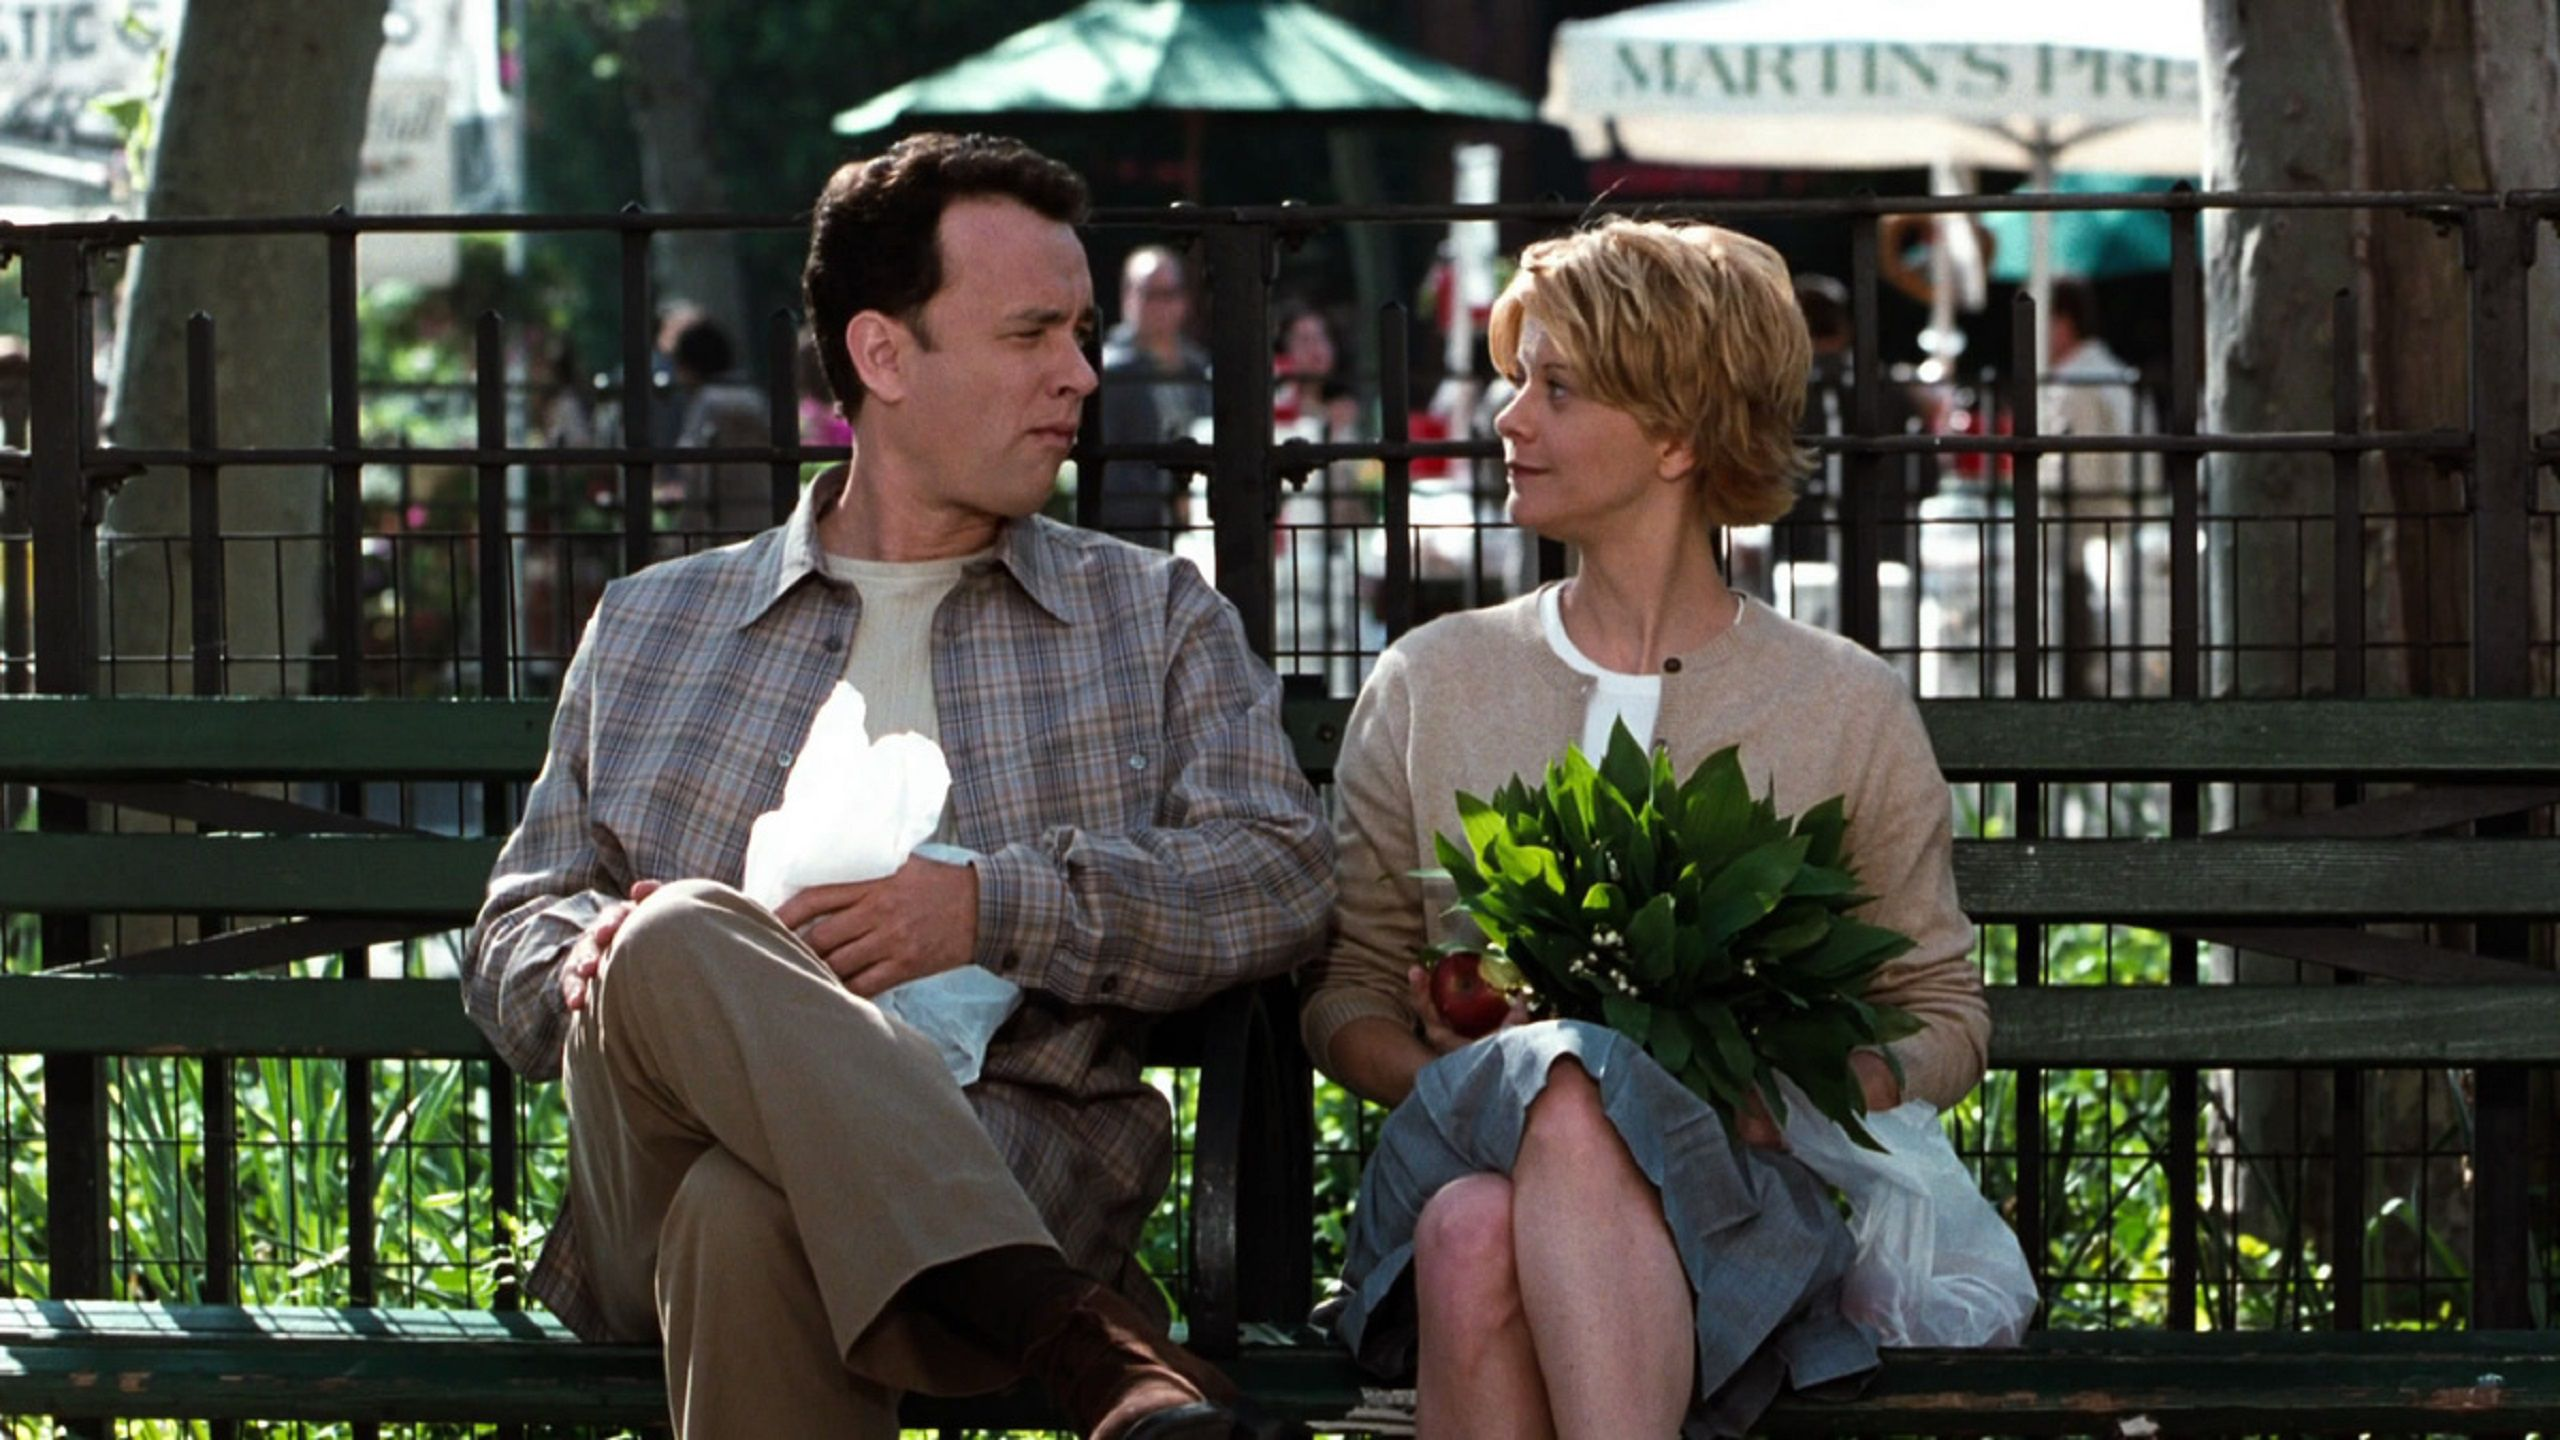 You've got Mail - Tom Hanks & Meg Ryan